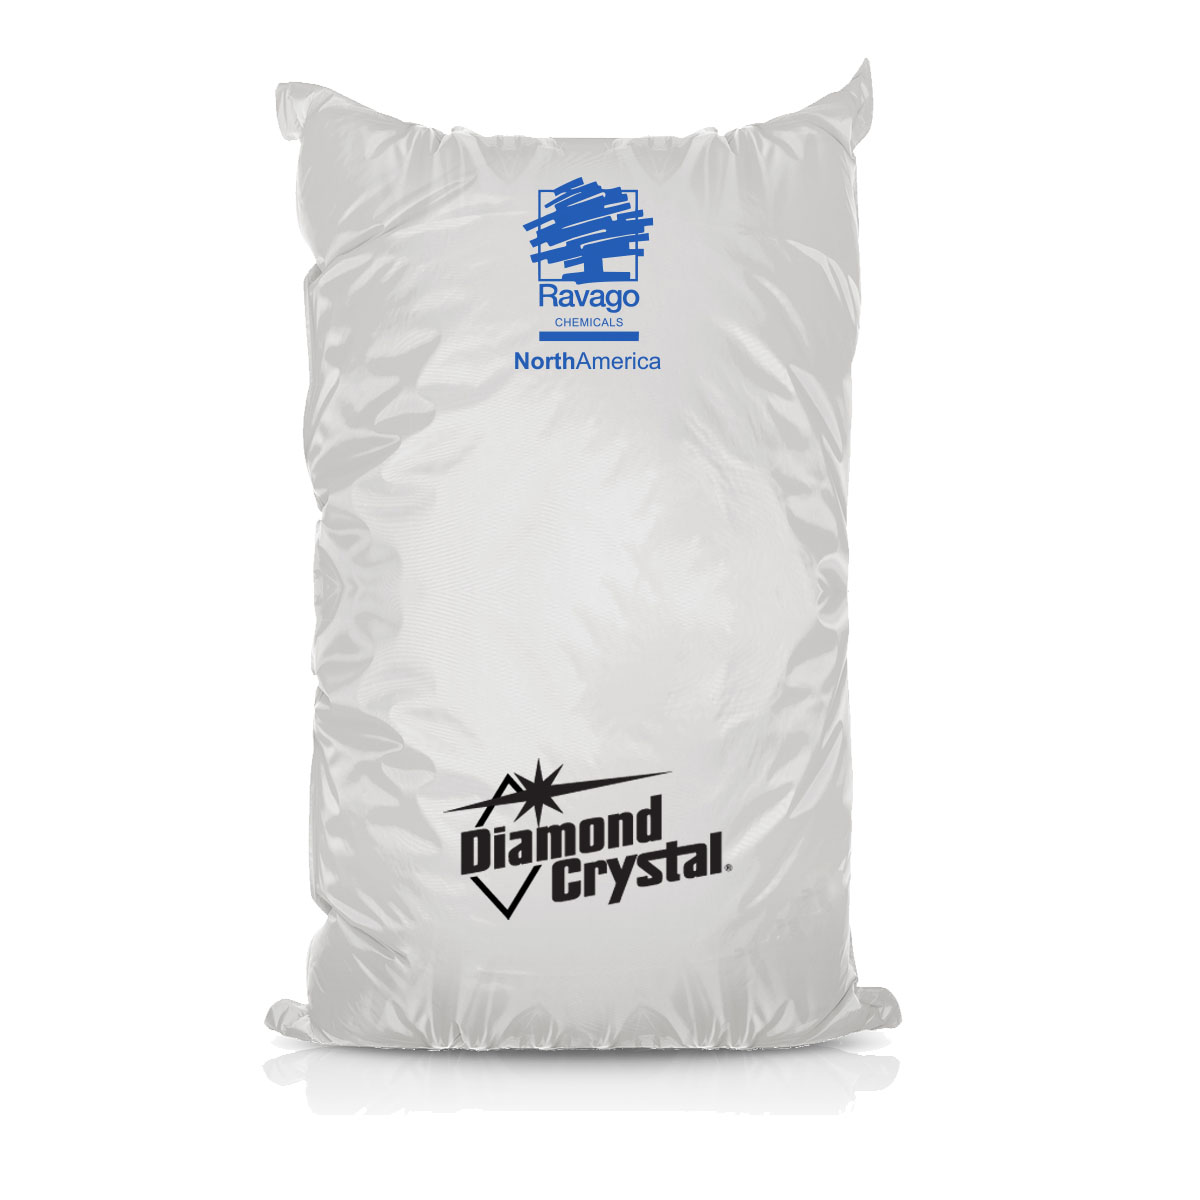 DIAMOND CRYSTAL POTASSIUM CHLORIDE PELLETS